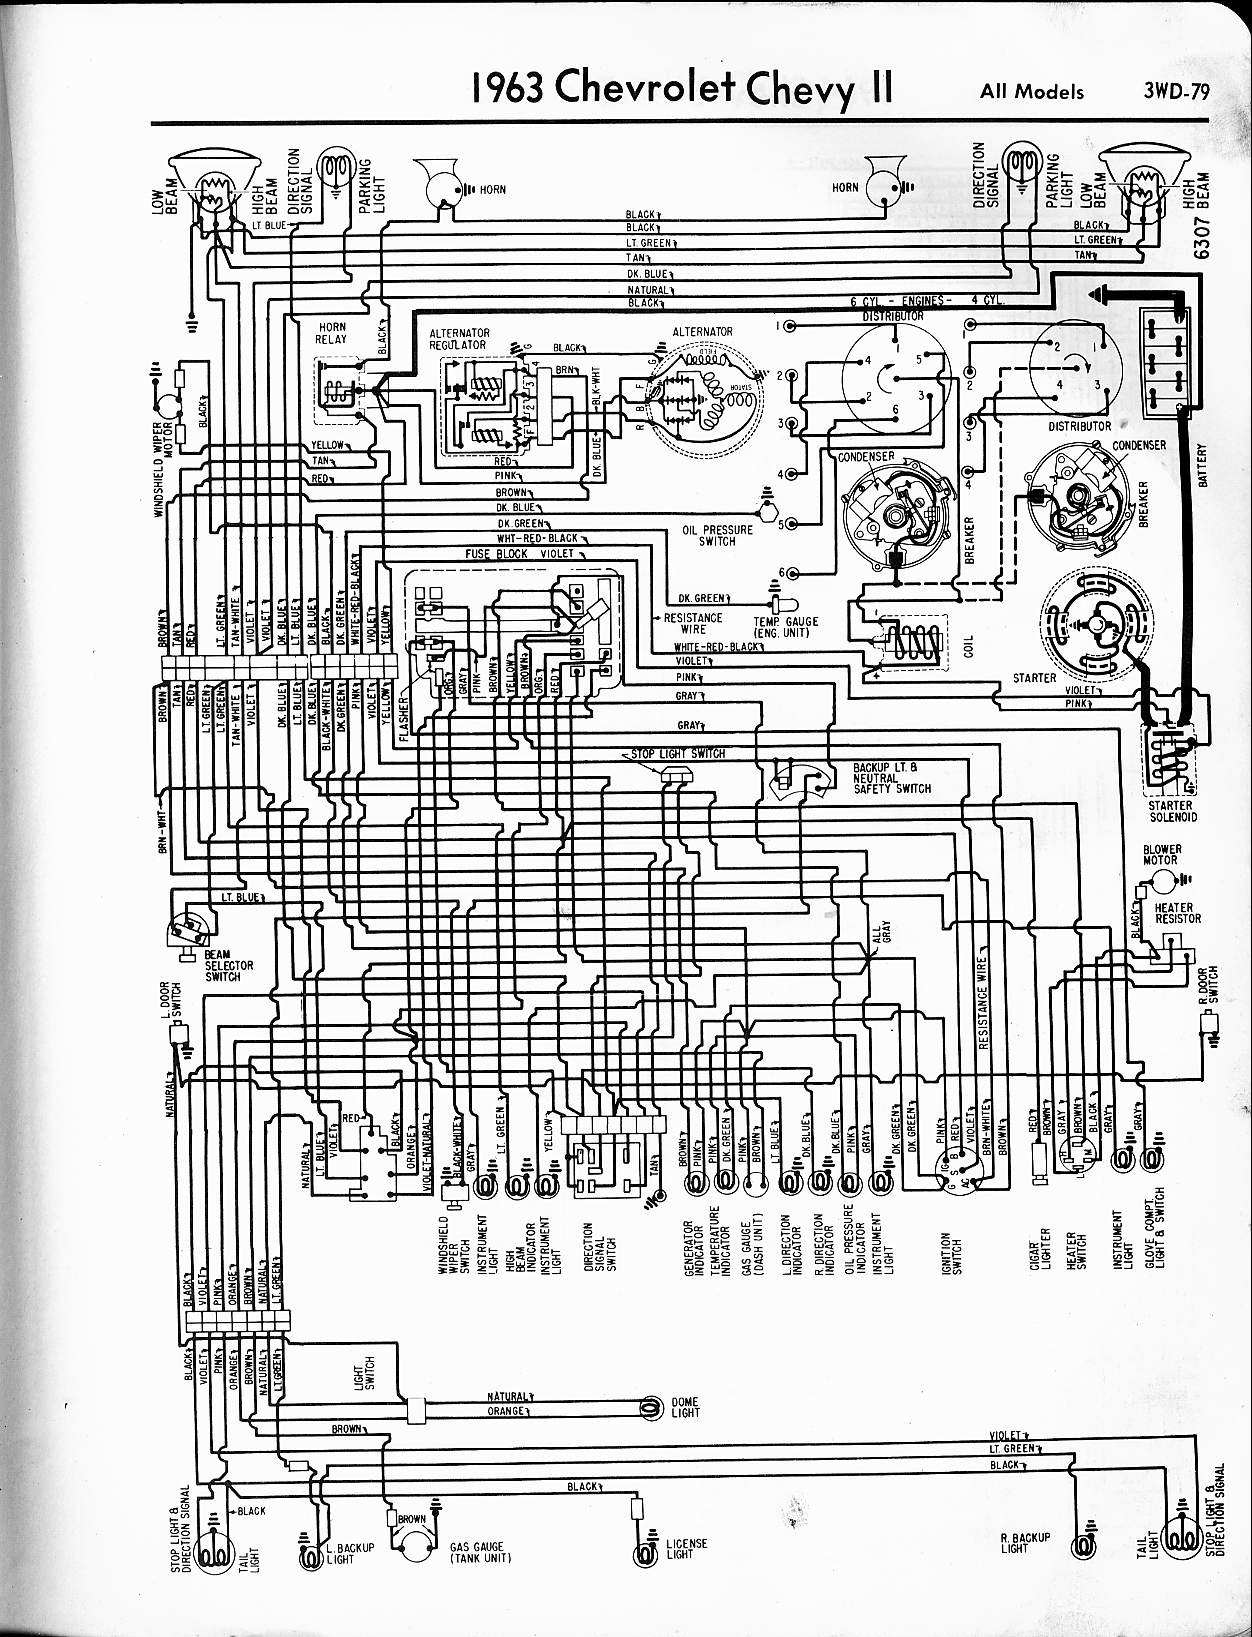 89 corvette wiring diagram enthusiast wiring diagrams u2022 rh bwpartnersautos com